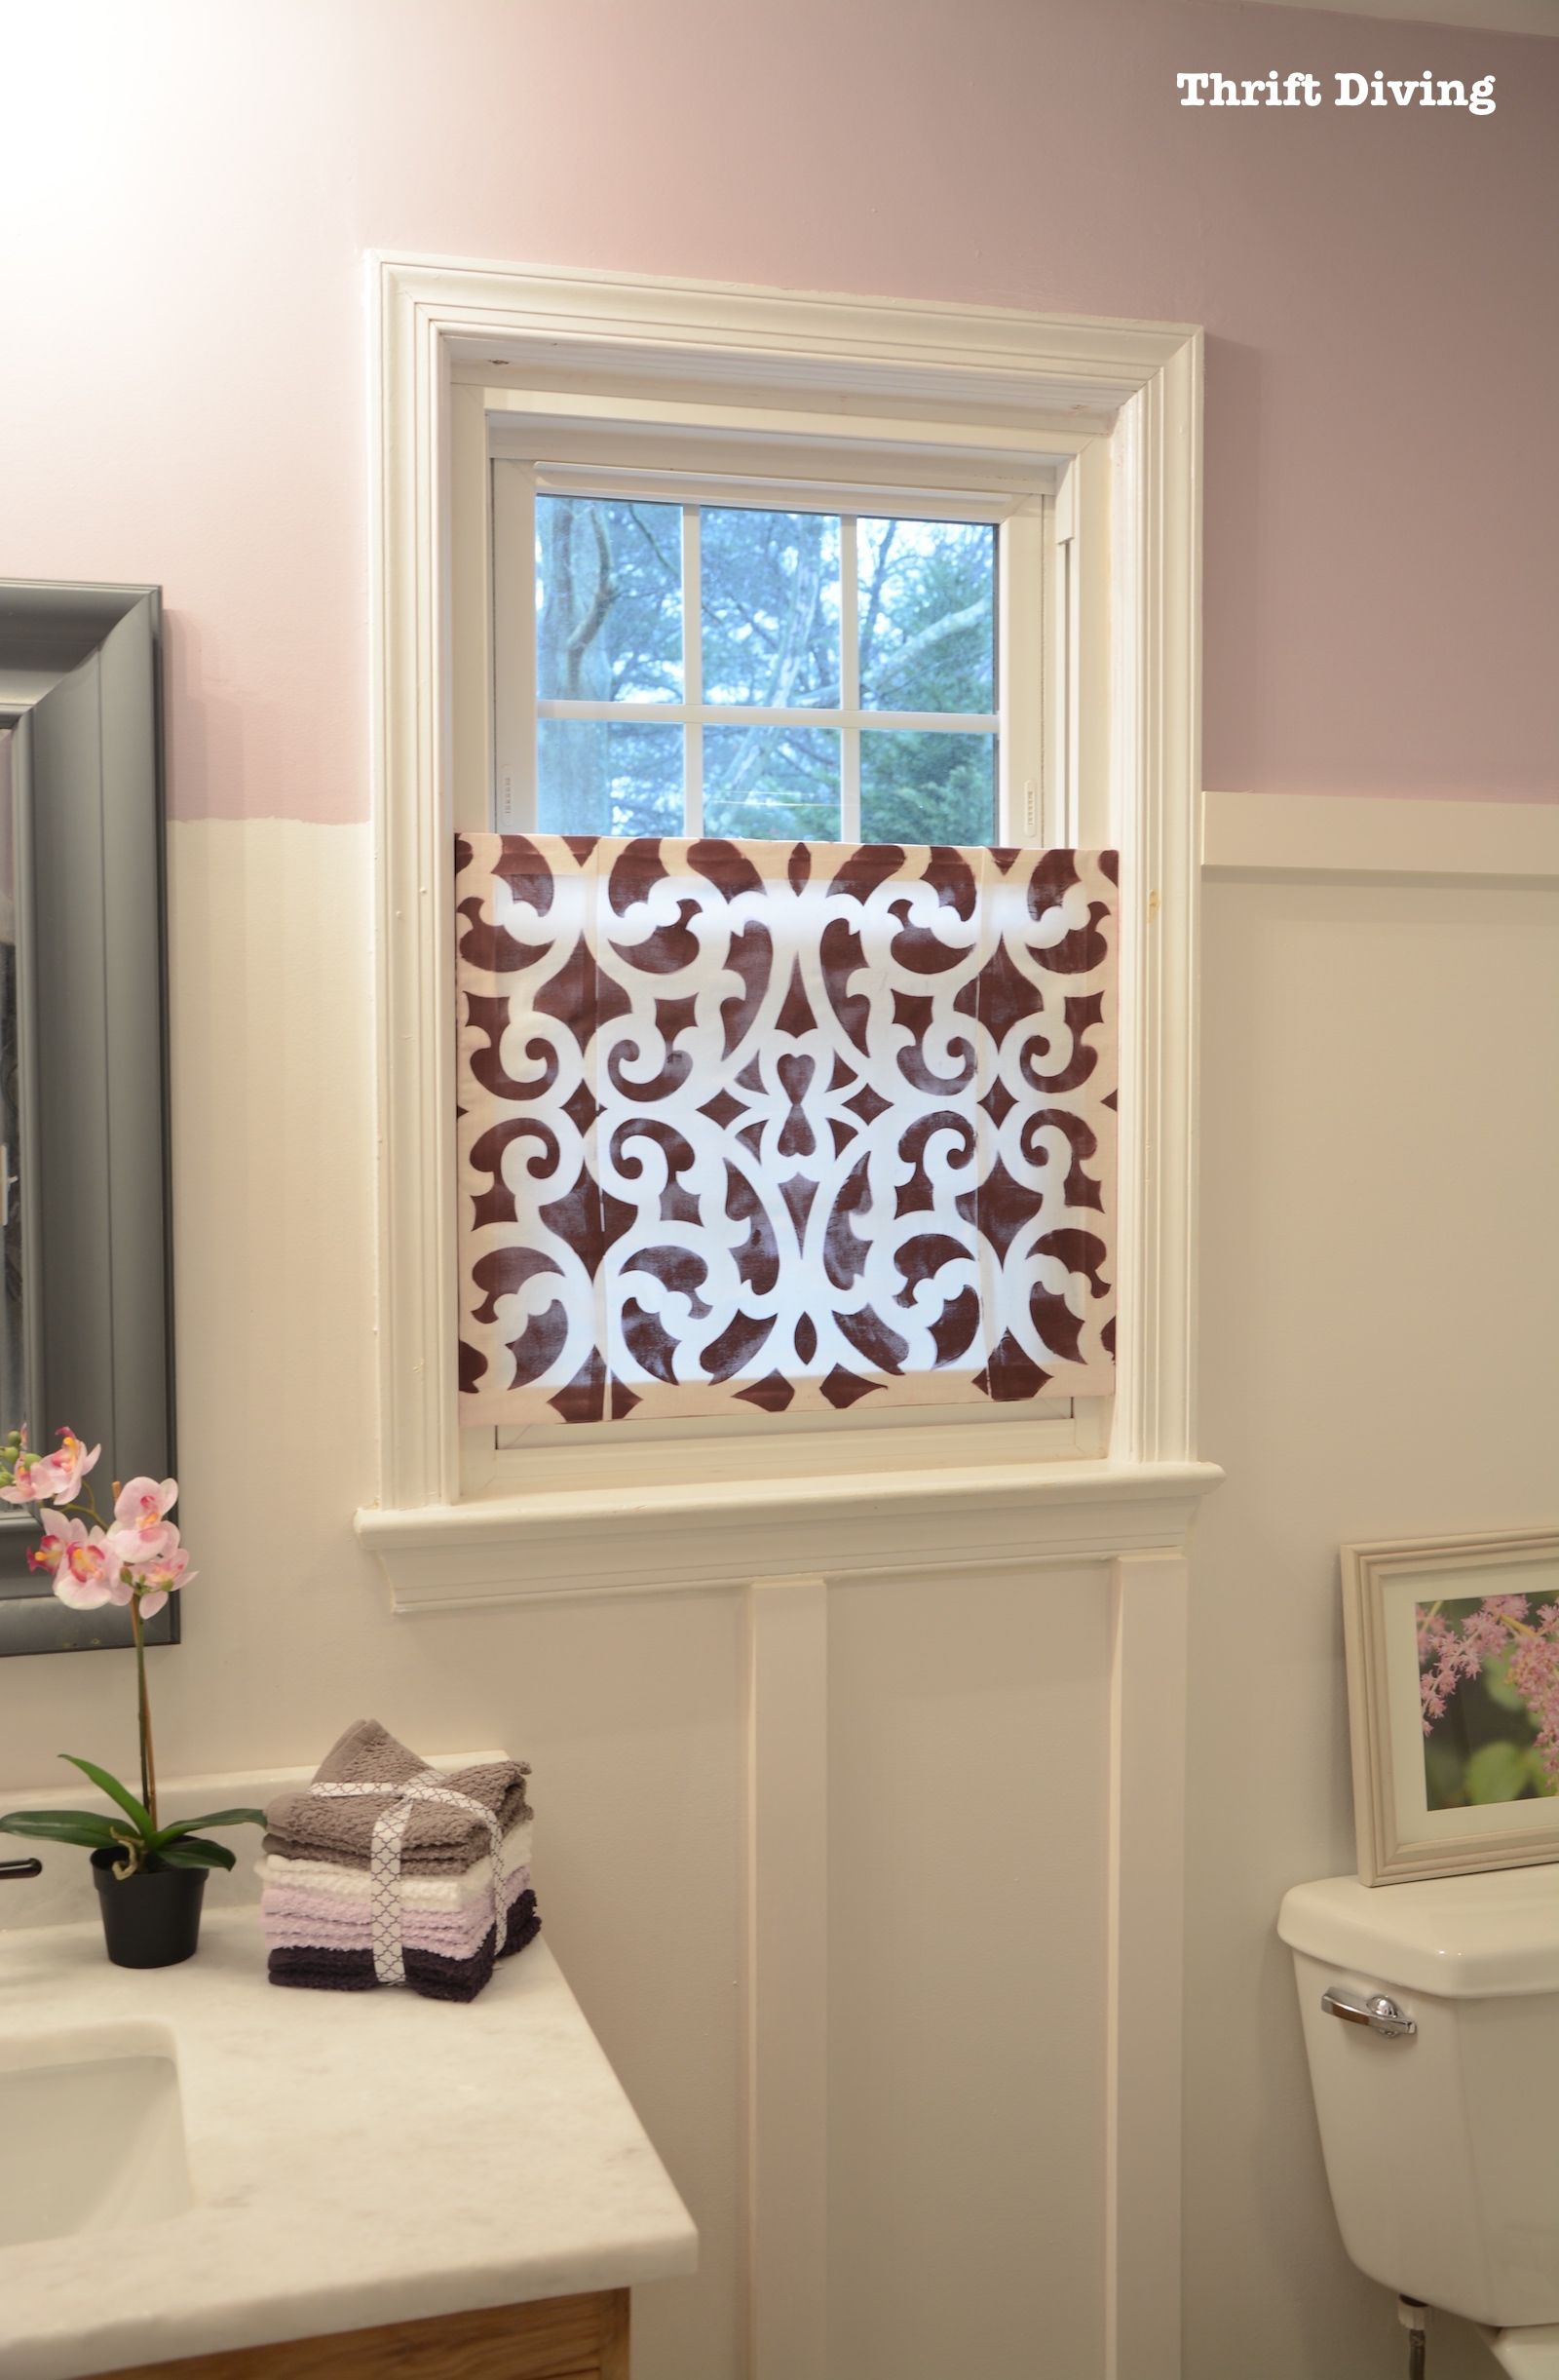 Lovely bathroom window treatment ideas bathroom ideas designs blograquelamaral for Bathroom window dressing ideas